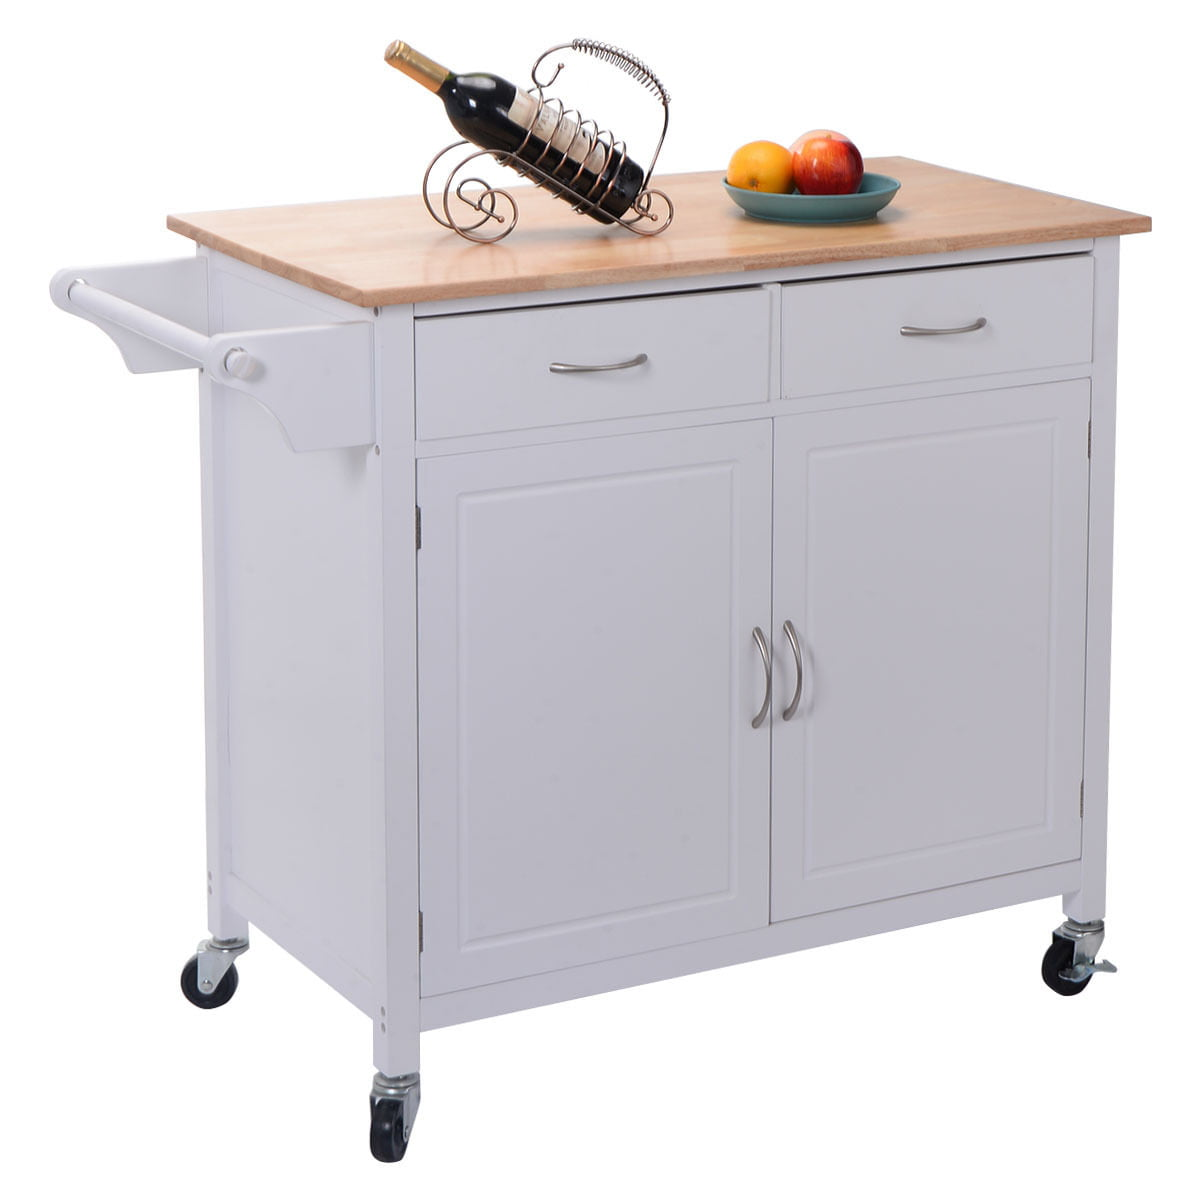 Pictures Of Kitchen Islands kitchen islands & carts - walmart